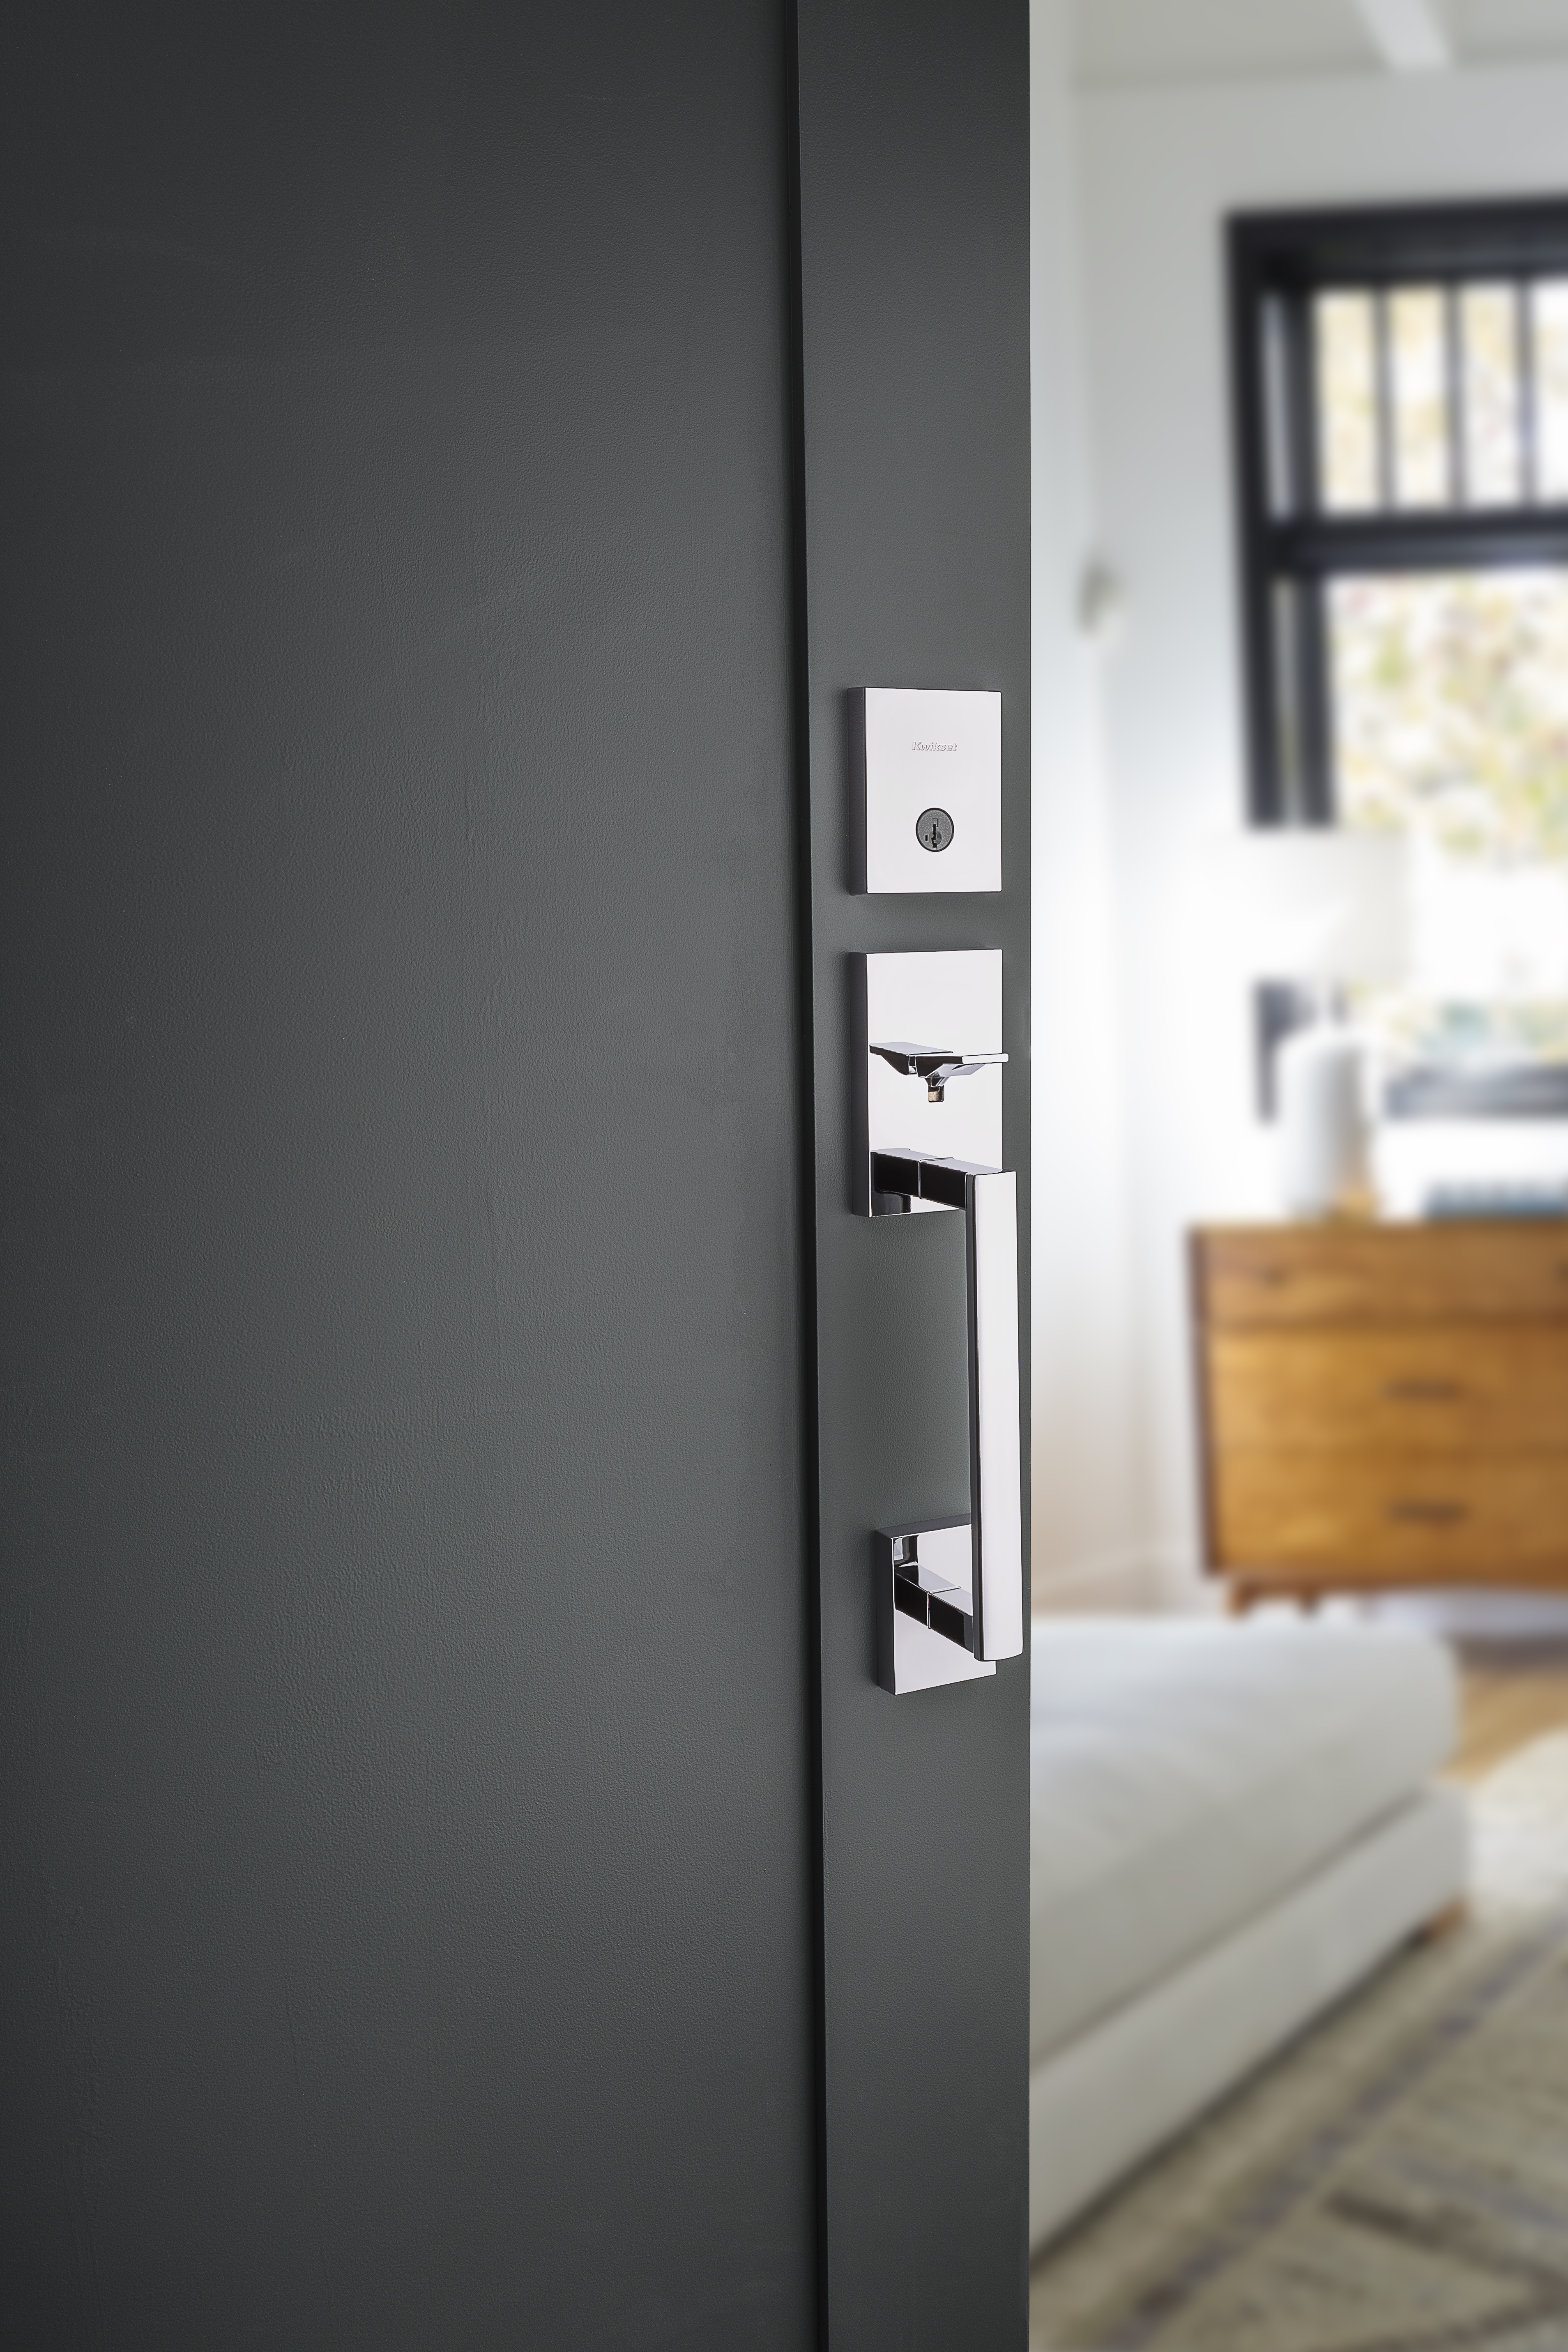 door quiet and locking control drive traditional exterior top selling entry locks from front doors interior the lock sleek metal cnt your smart smartcode with style system is voice kwikset a alexa one of